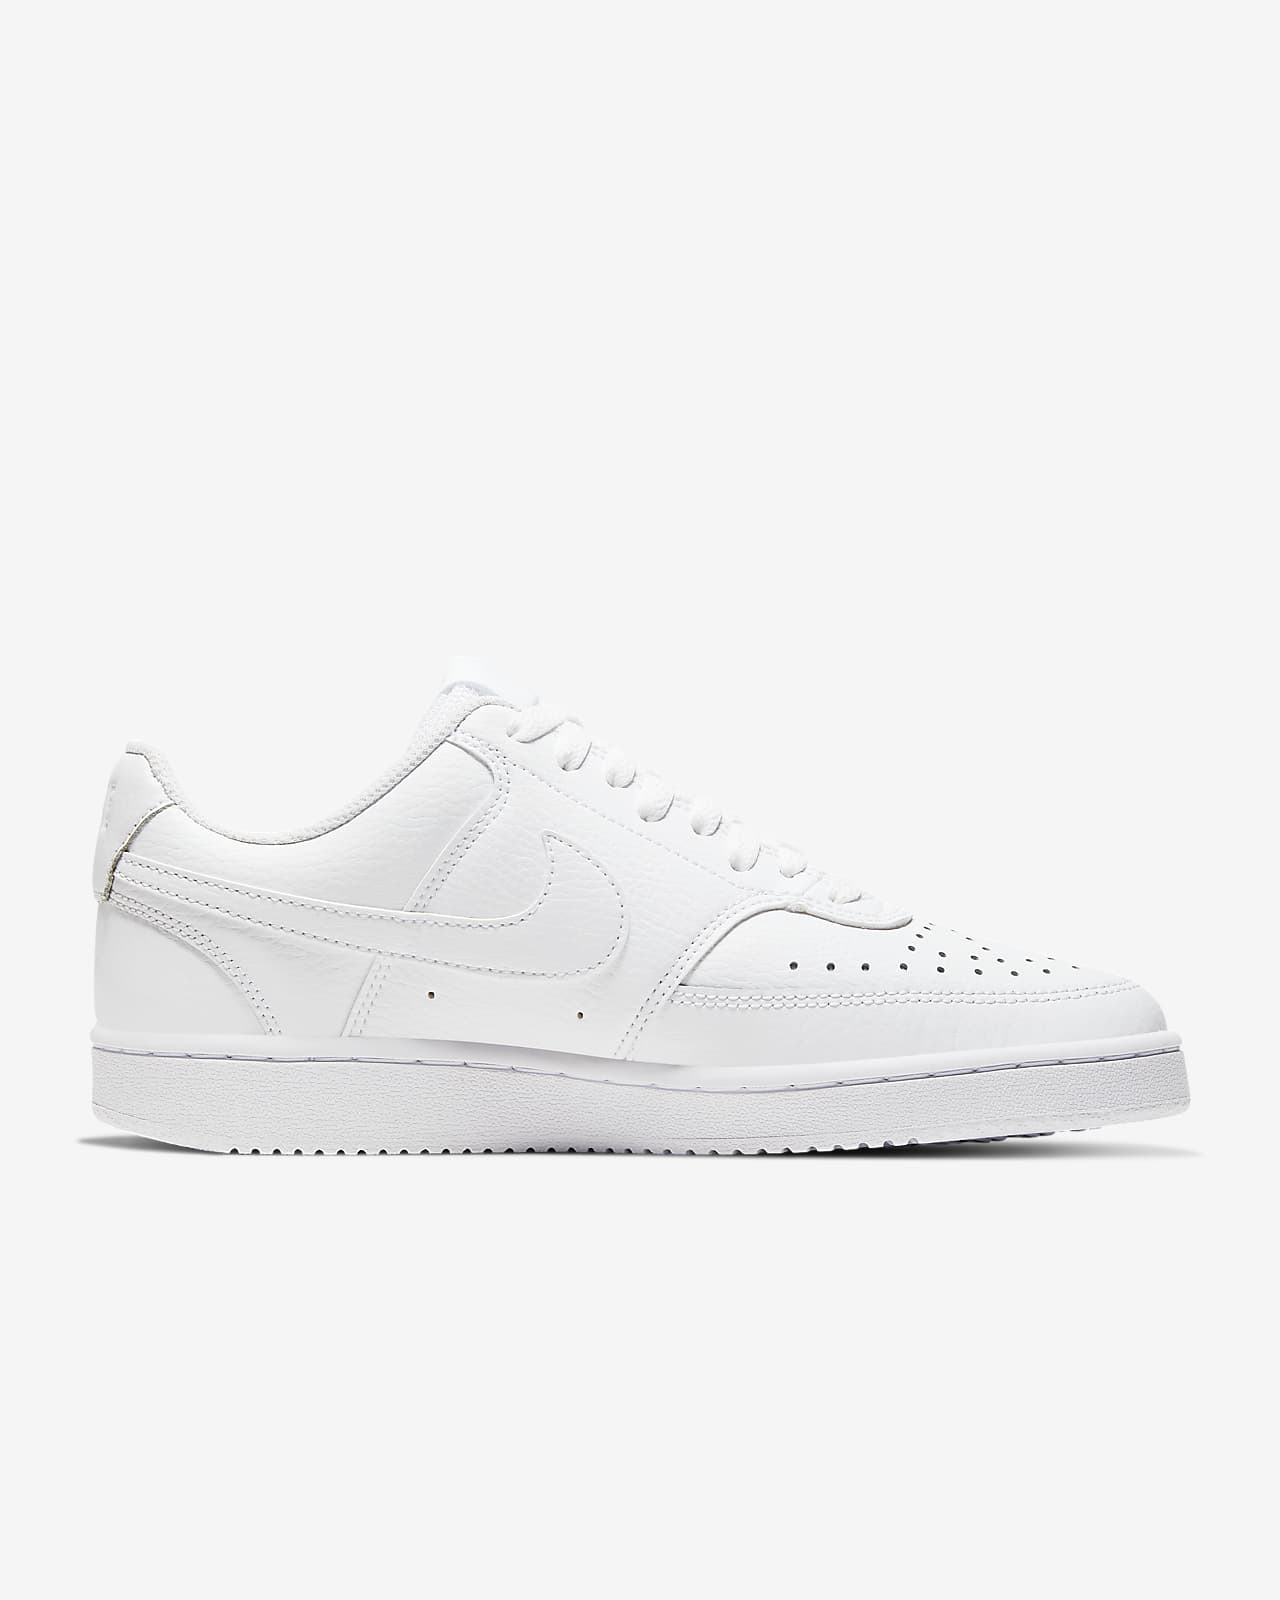 nike chaussures femme pastel